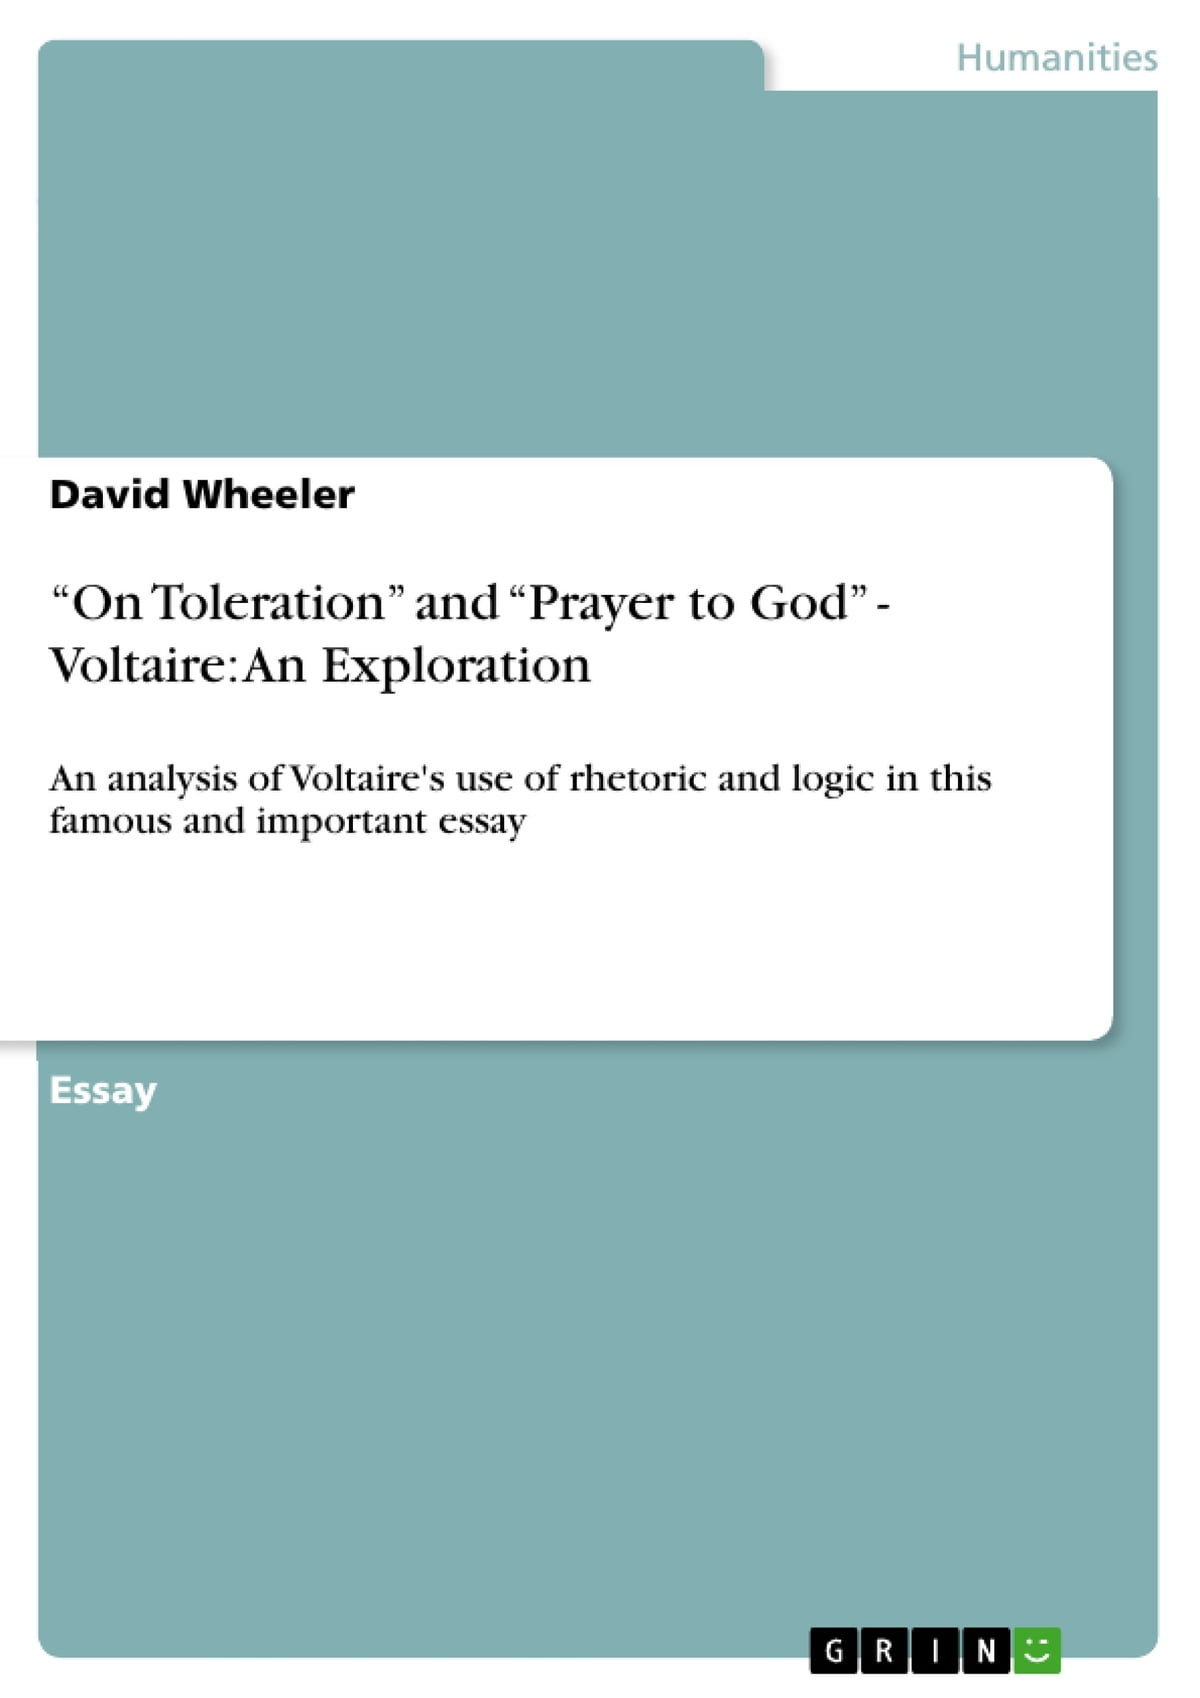 Great Gatsby Essay Thesis On Toleration And Prayer To God  Voltaire An Exploration Ebook By  David Wheeler    Rakuten Kobo Research Essay Proposal also Buy Essay Paper On Toleration And Prayer To God  Voltaire An Exploration Ebook  Essay On Health